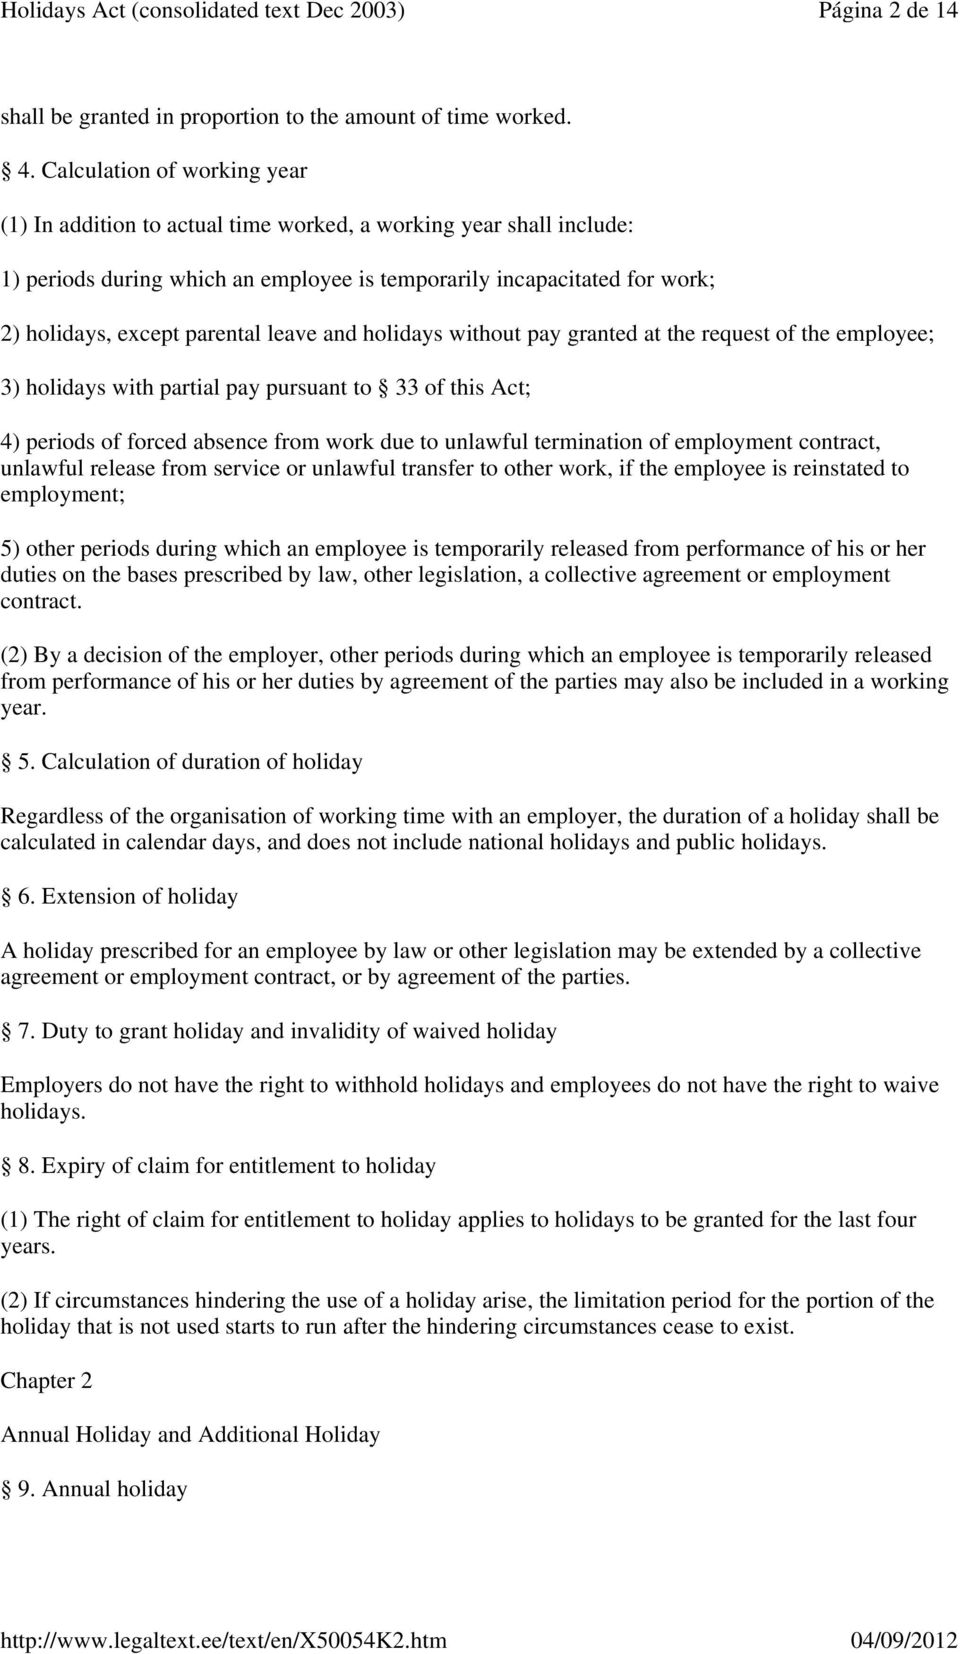 parental leave and holidays without pay granted at the request of the employee; 3) holidays with partial pay pursuant to 33 of this Act; 4) periods of forced absence from work due to unlawful